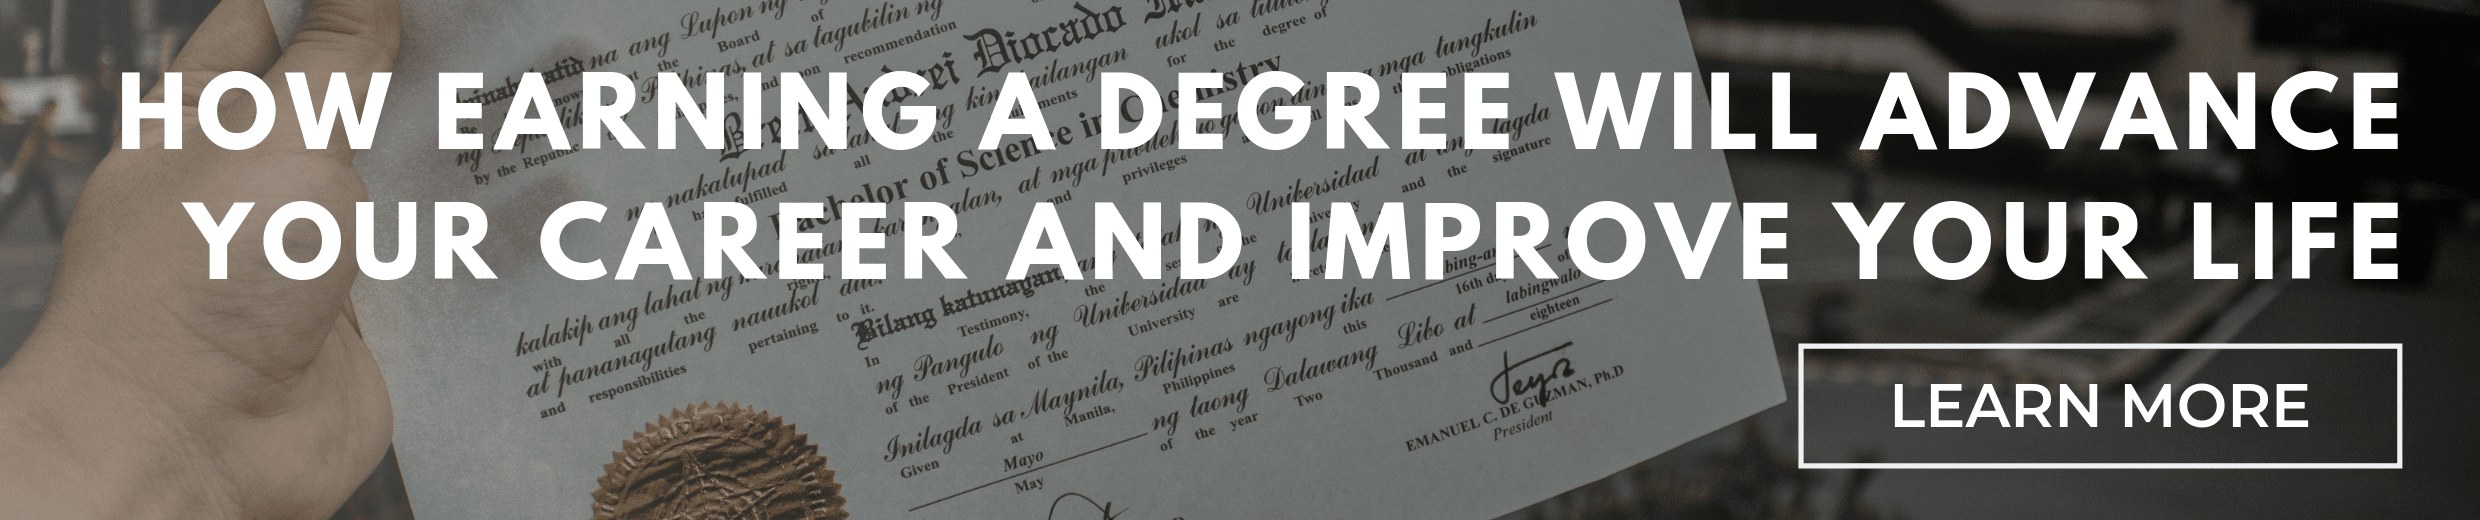 3 Reasons Why Earning a Degree Will Advance Your Career and Improve Your Life